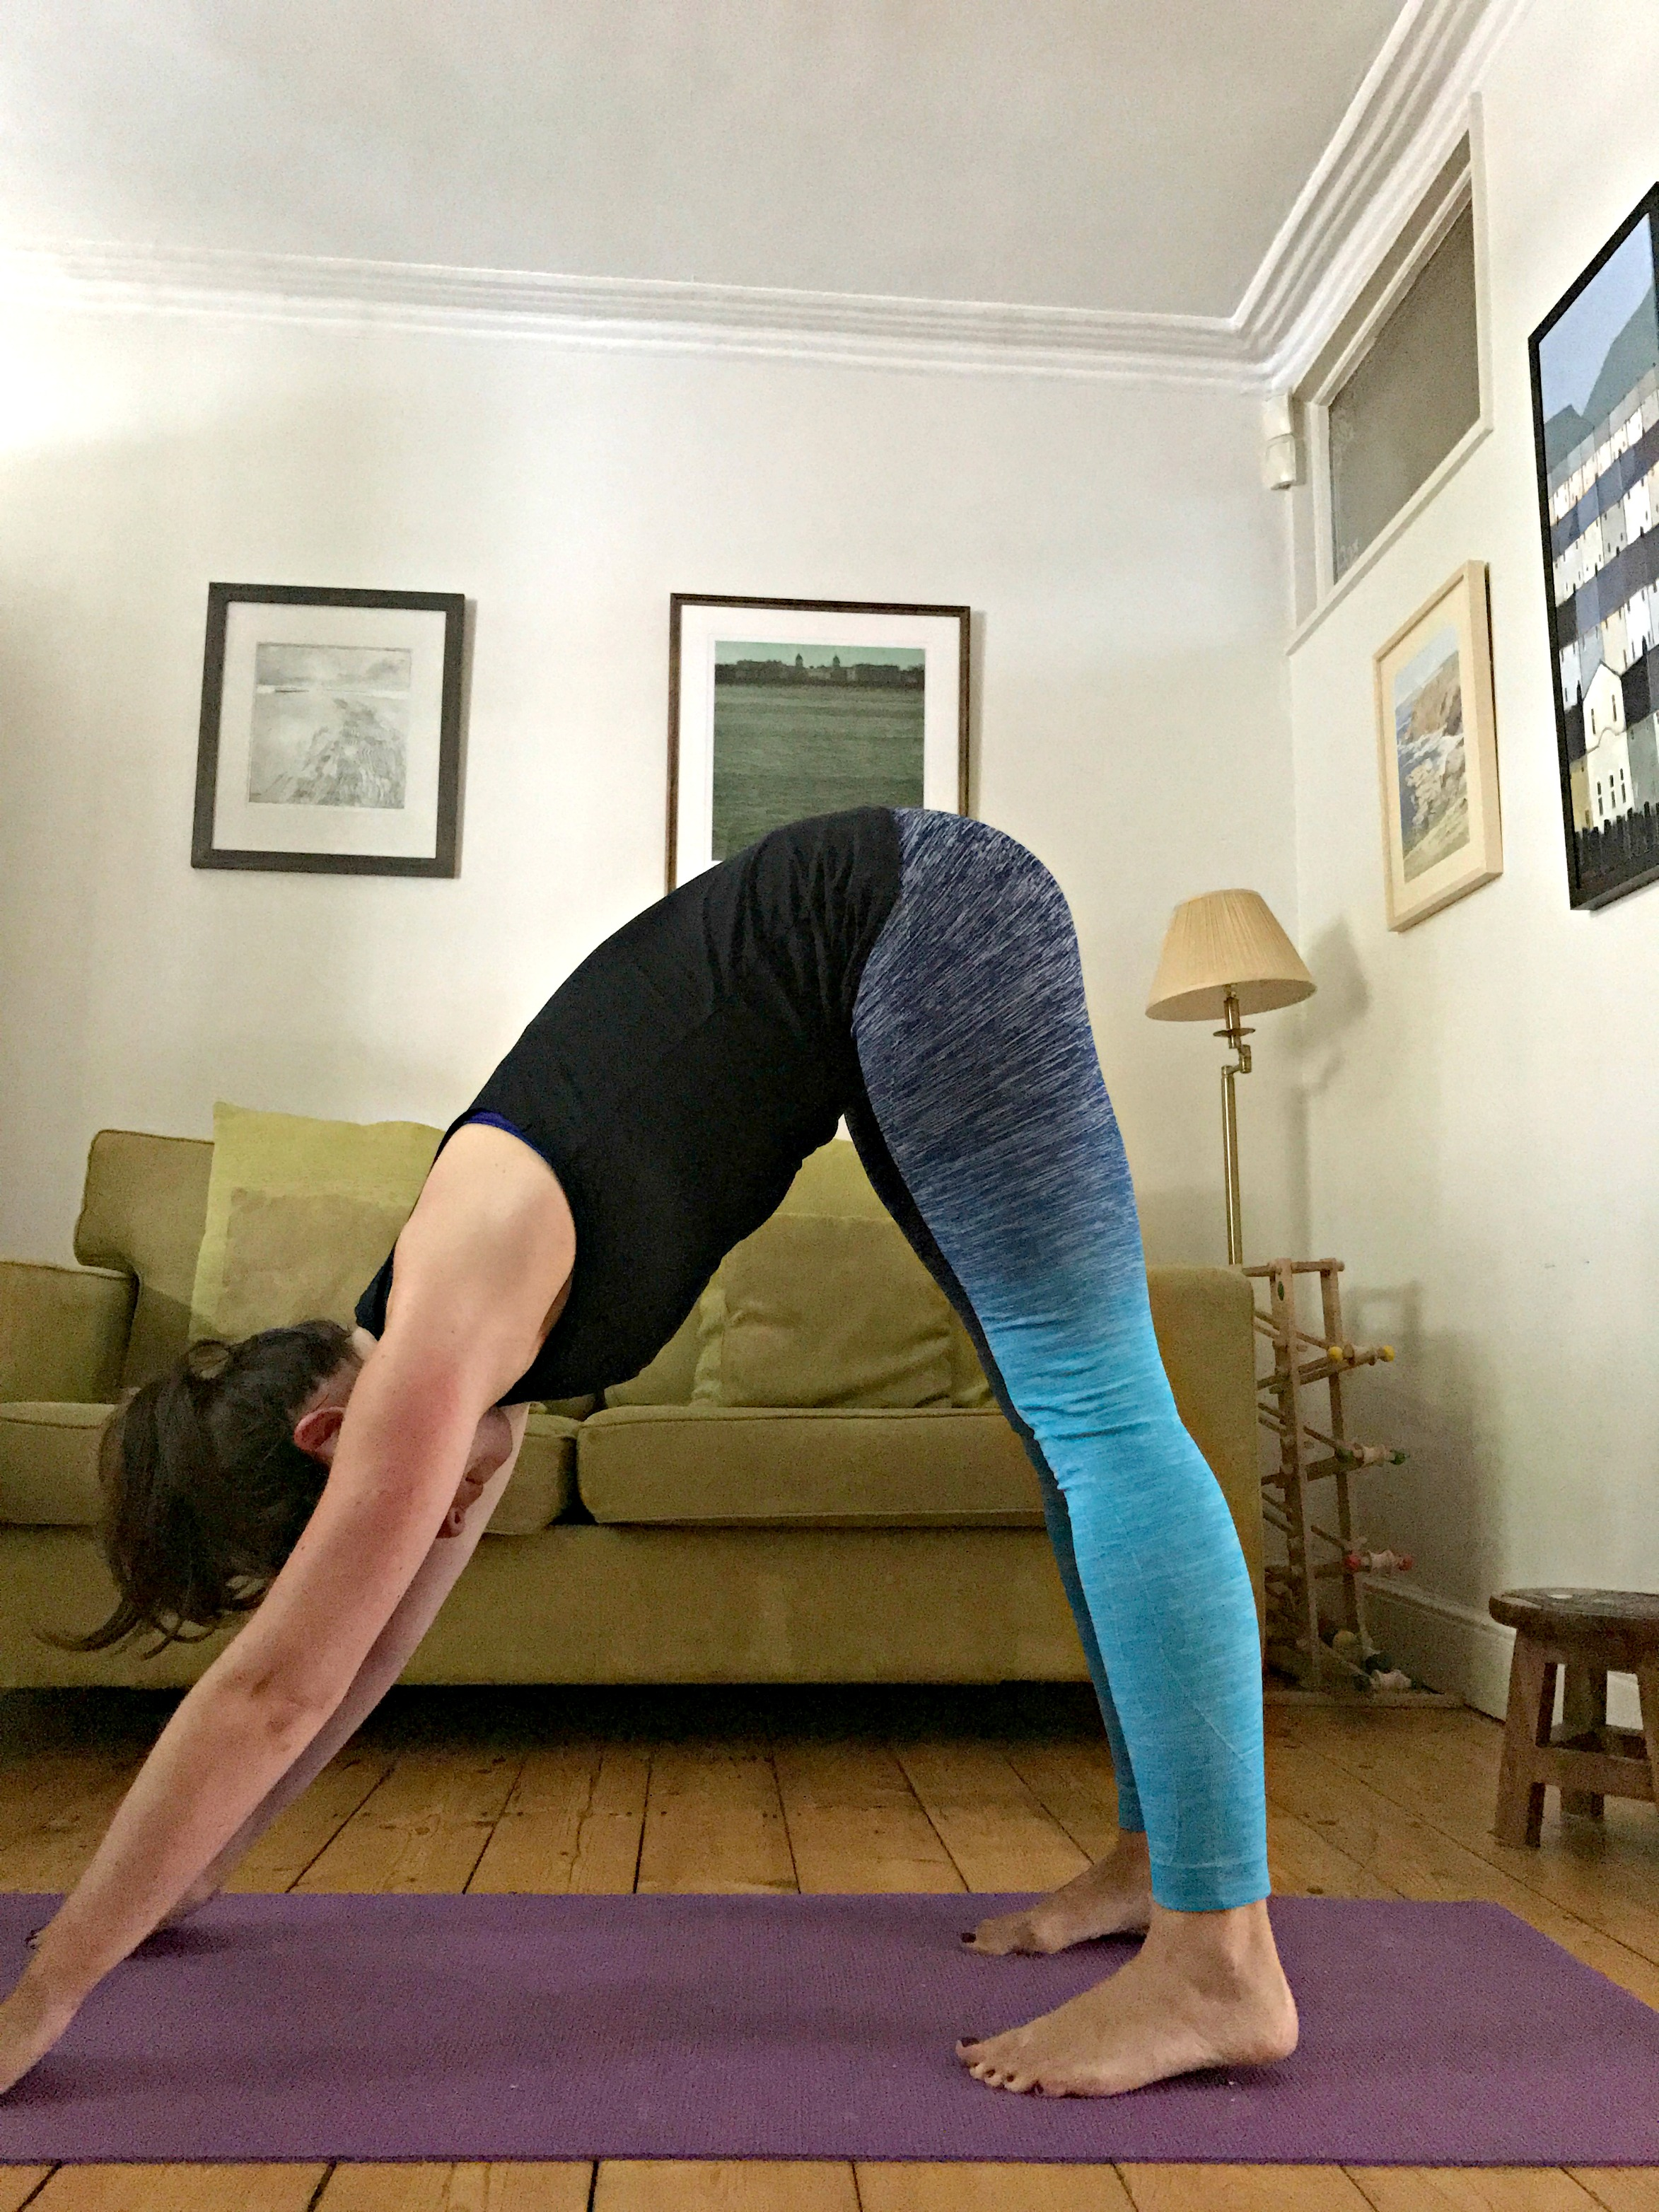 Downward dog - you knew that one already, right?!